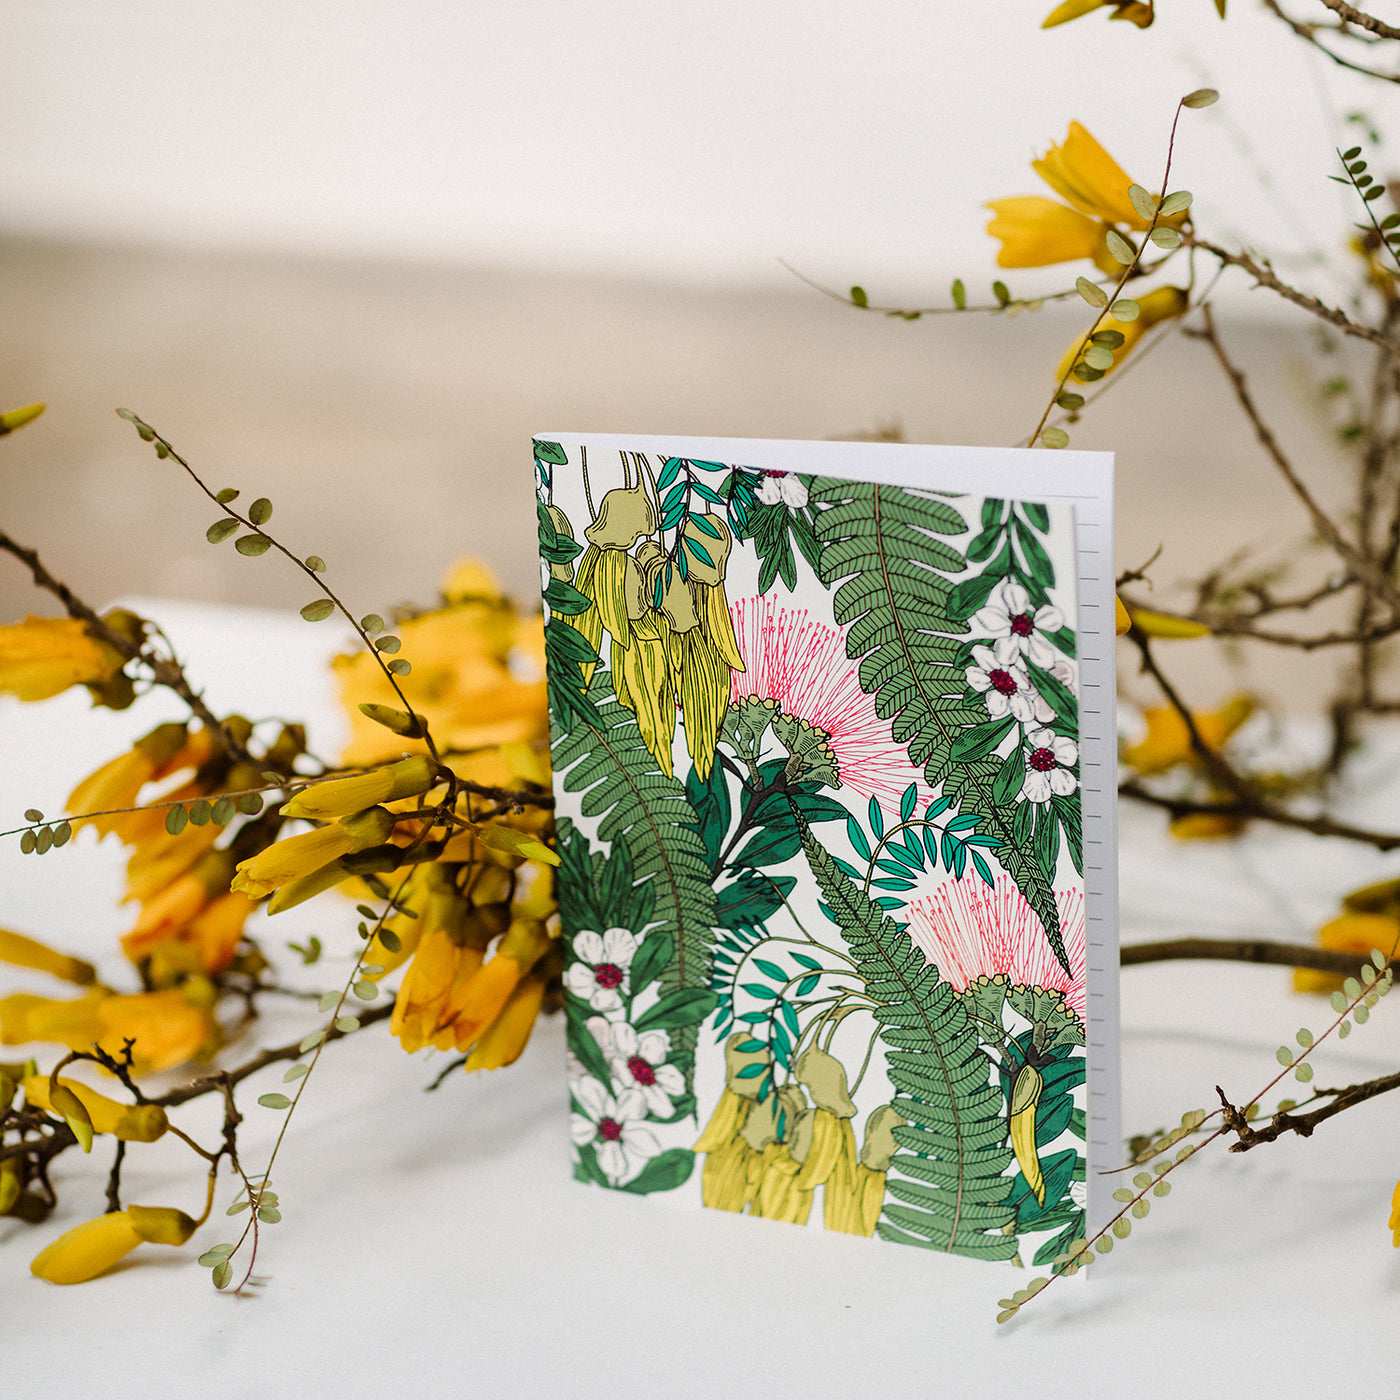 Stationery by Miel des Collines with Pohutukawa and Kowhai flowers